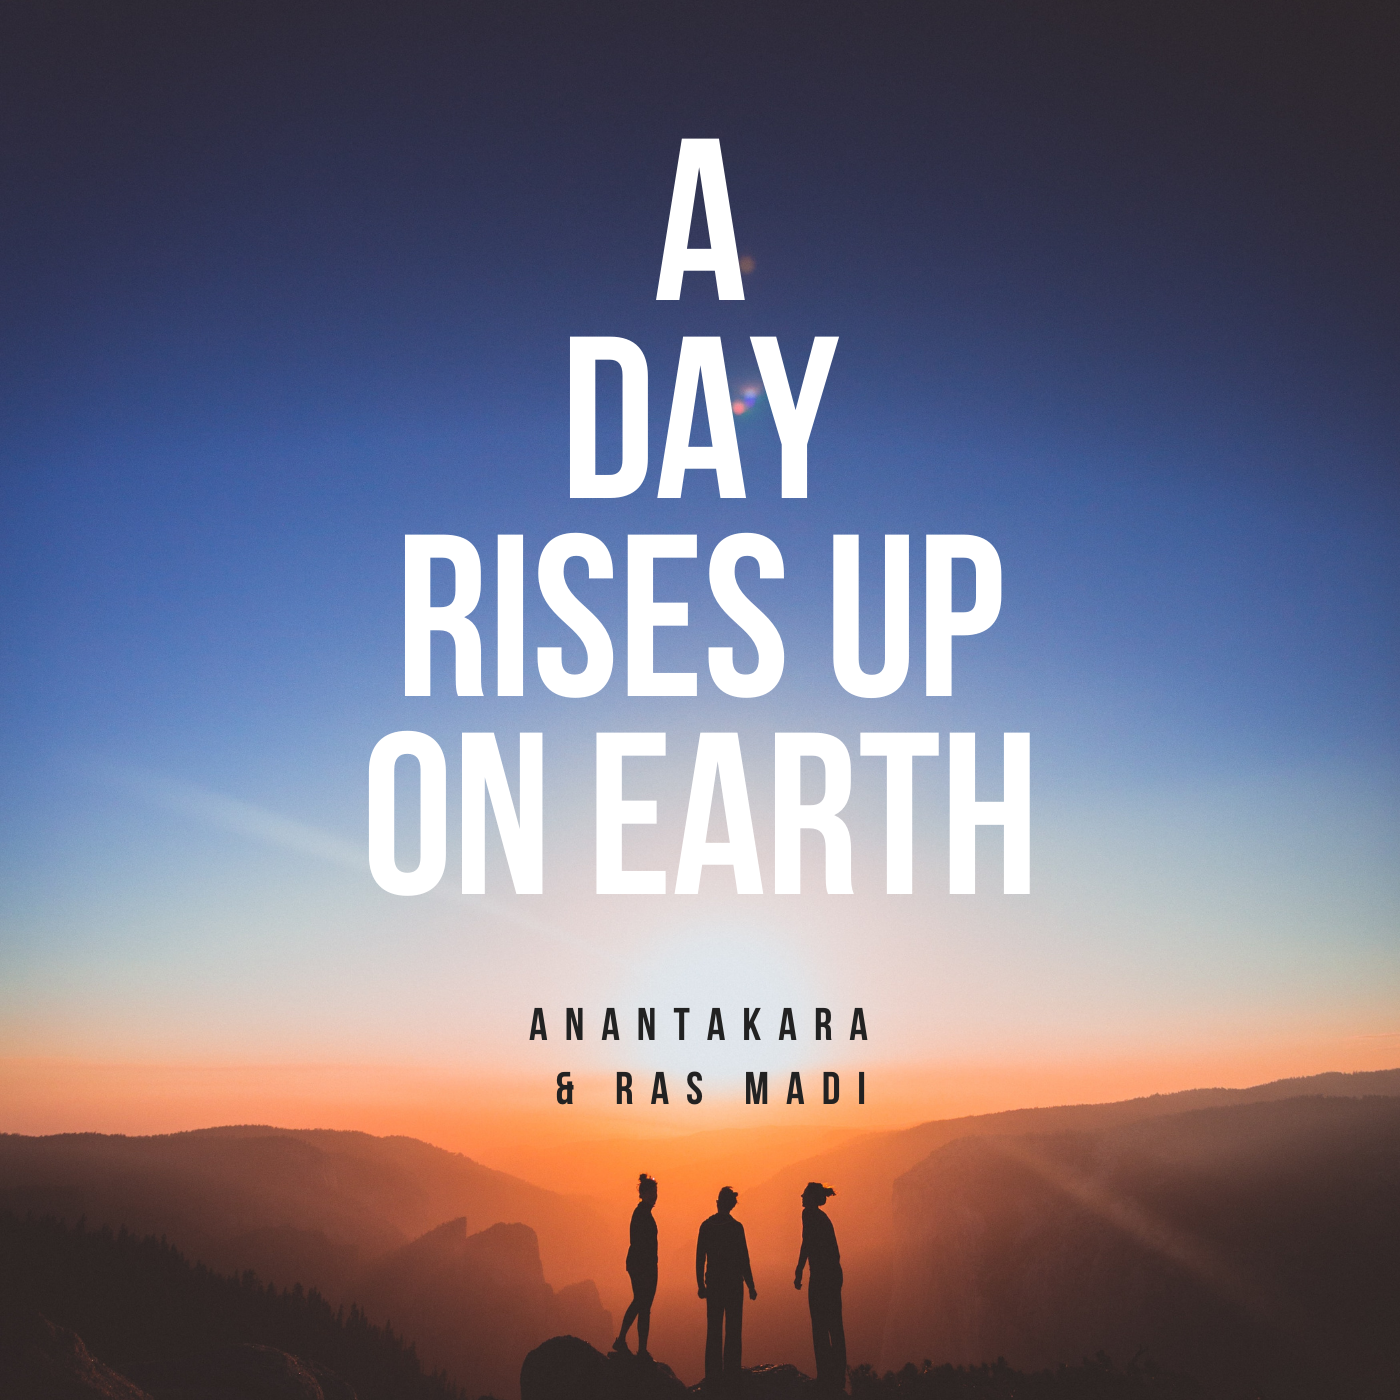 A Day rises Up on earth